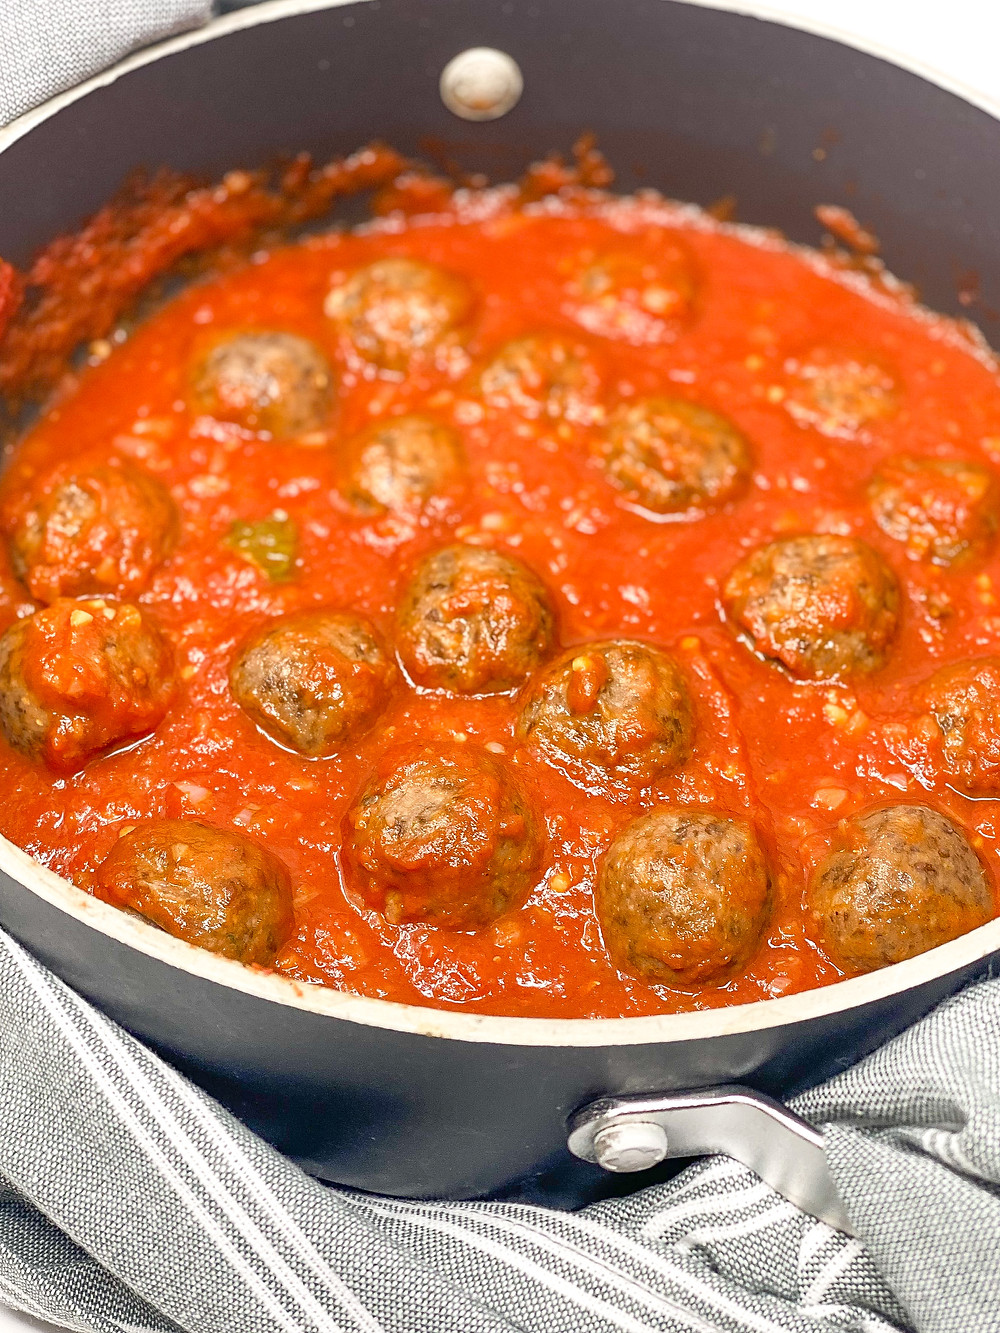 LENTIL BALLS WITH TOMATO SAUCE  cooking in the pan